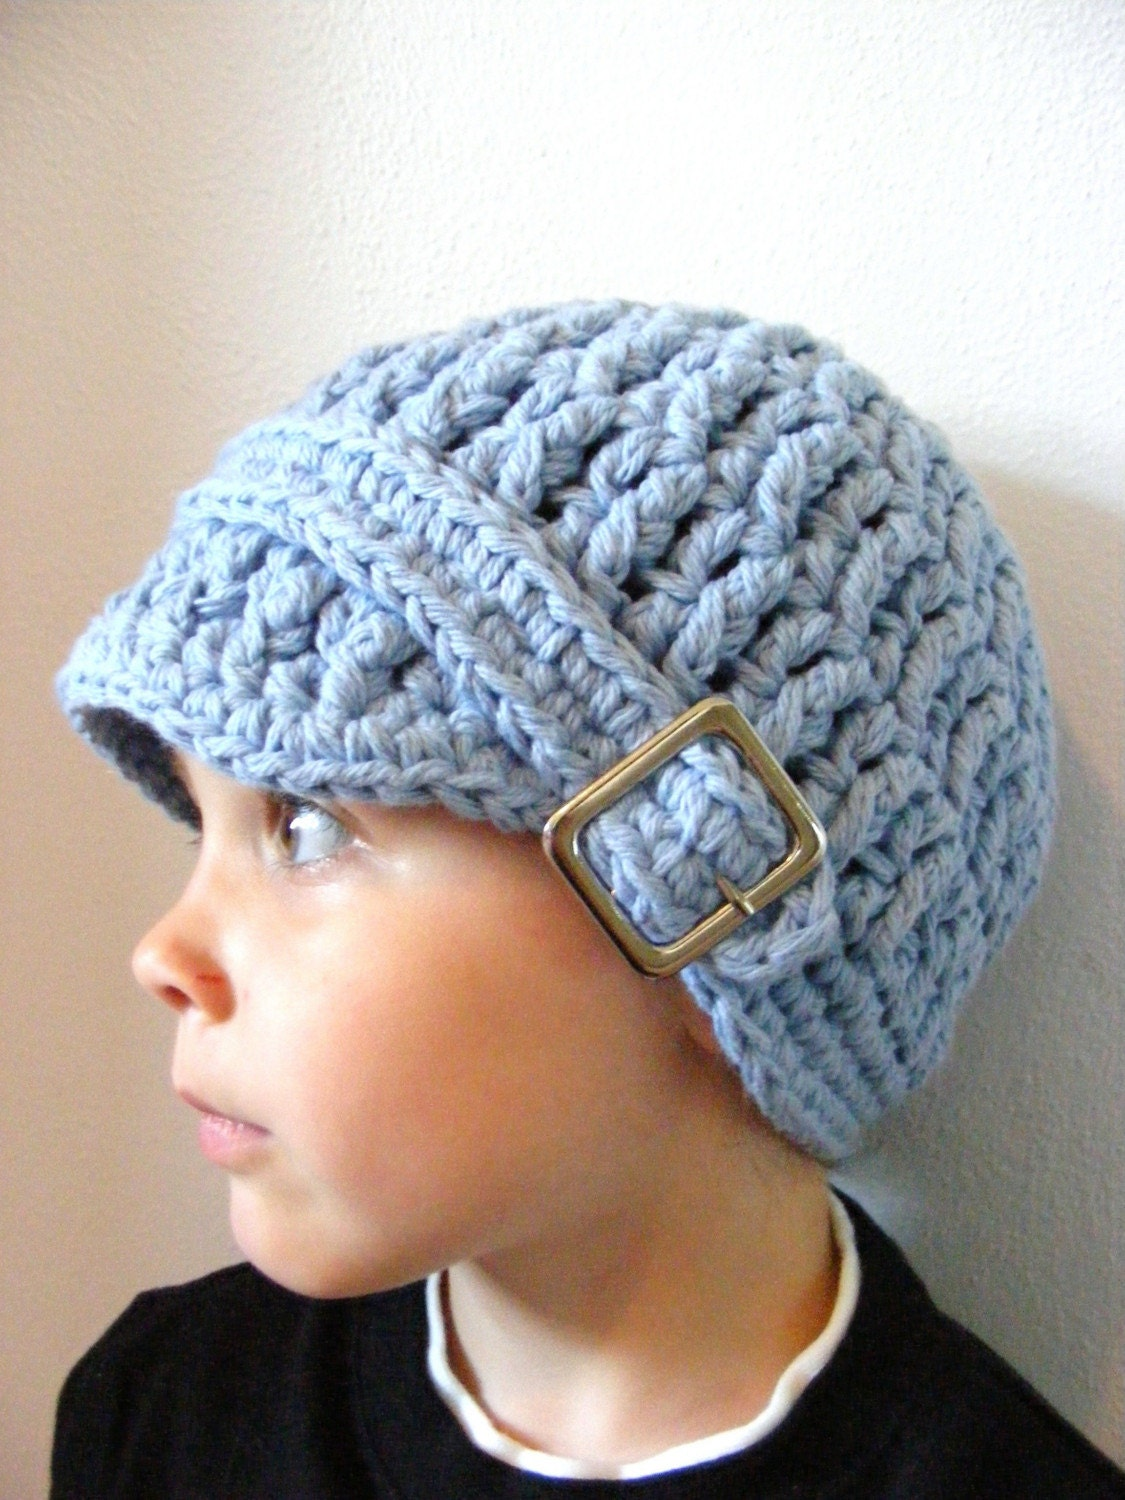 2T to 4T Toddler Cotton Visor Square Buckle Beanie - Light Blue